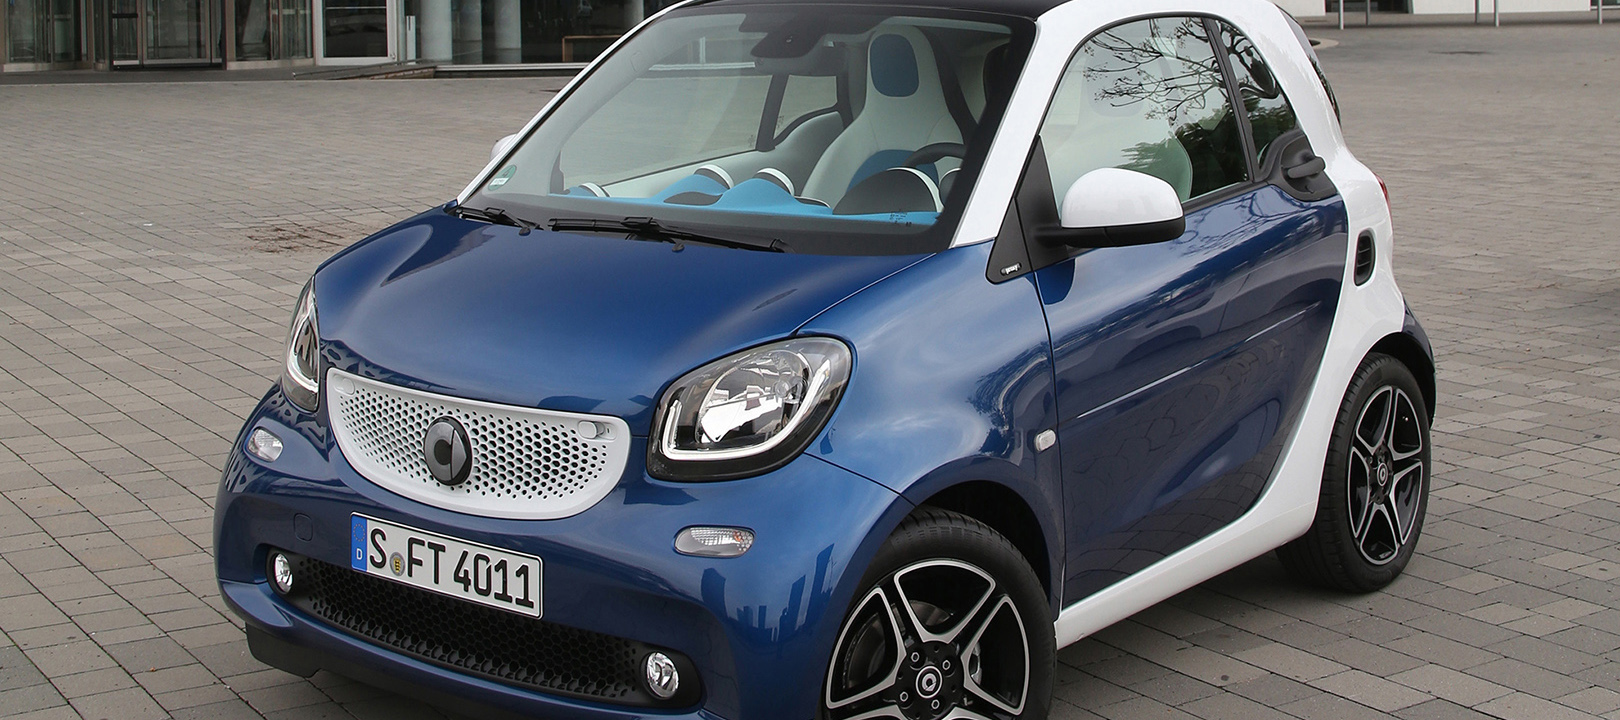 smart fortwo and forfour 453 a review by dr ian kuah